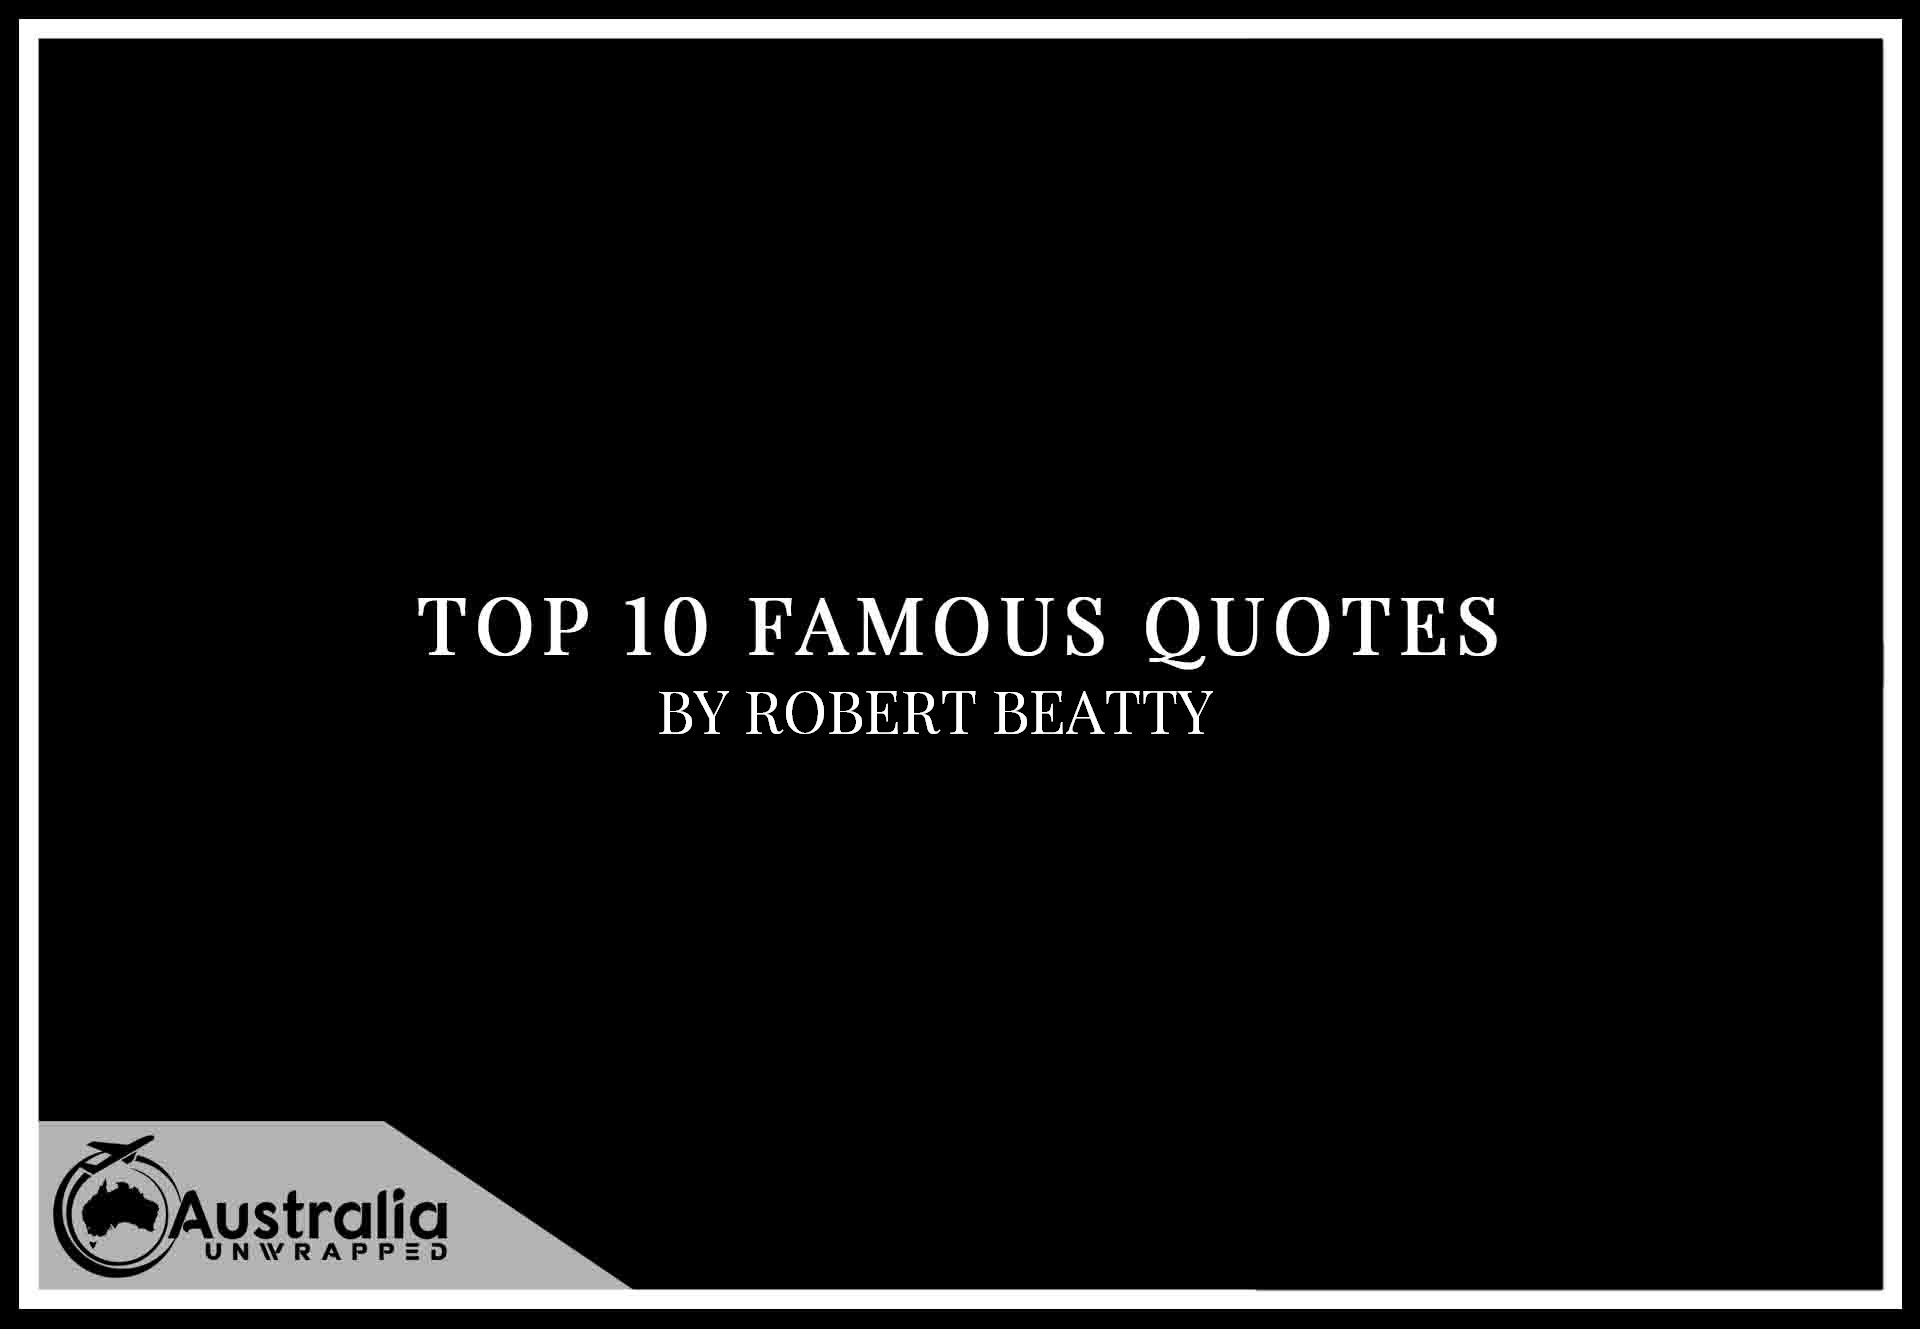 Top 10 Famous Quotes by Author Robert Beatty